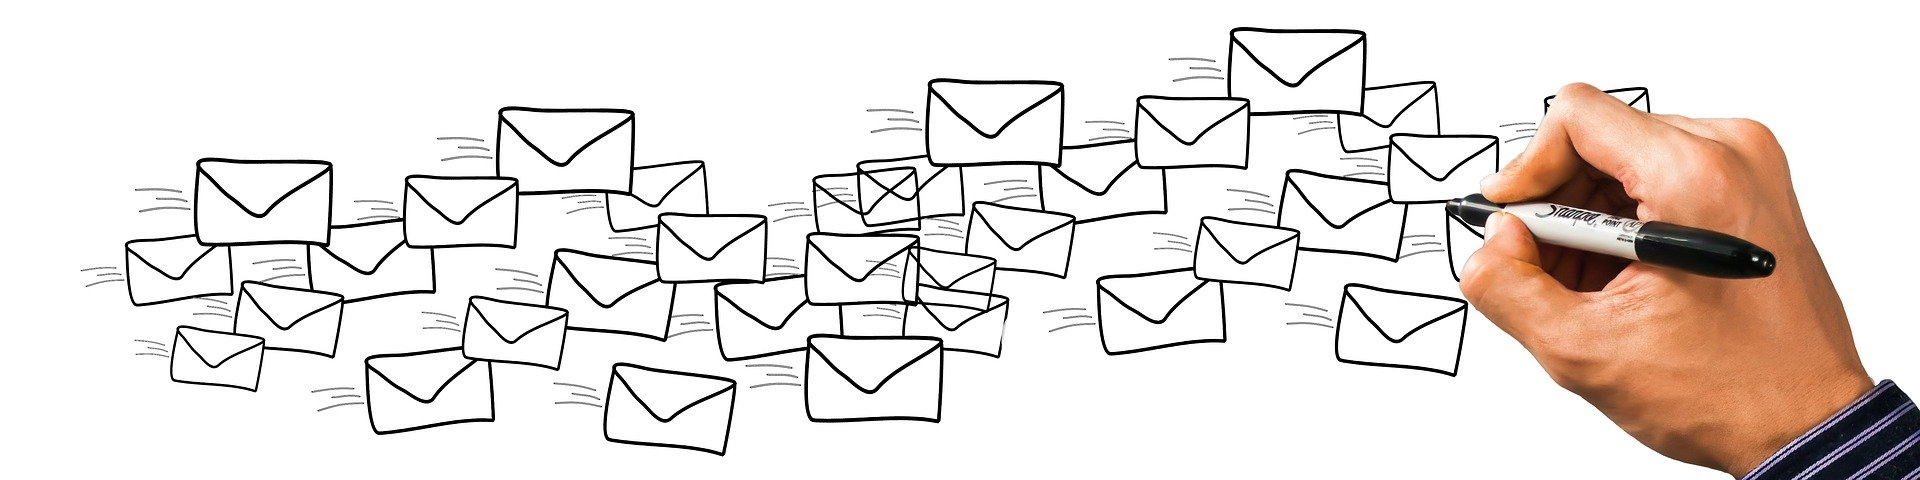 How Lawyers Should Send Documents to Their Clients